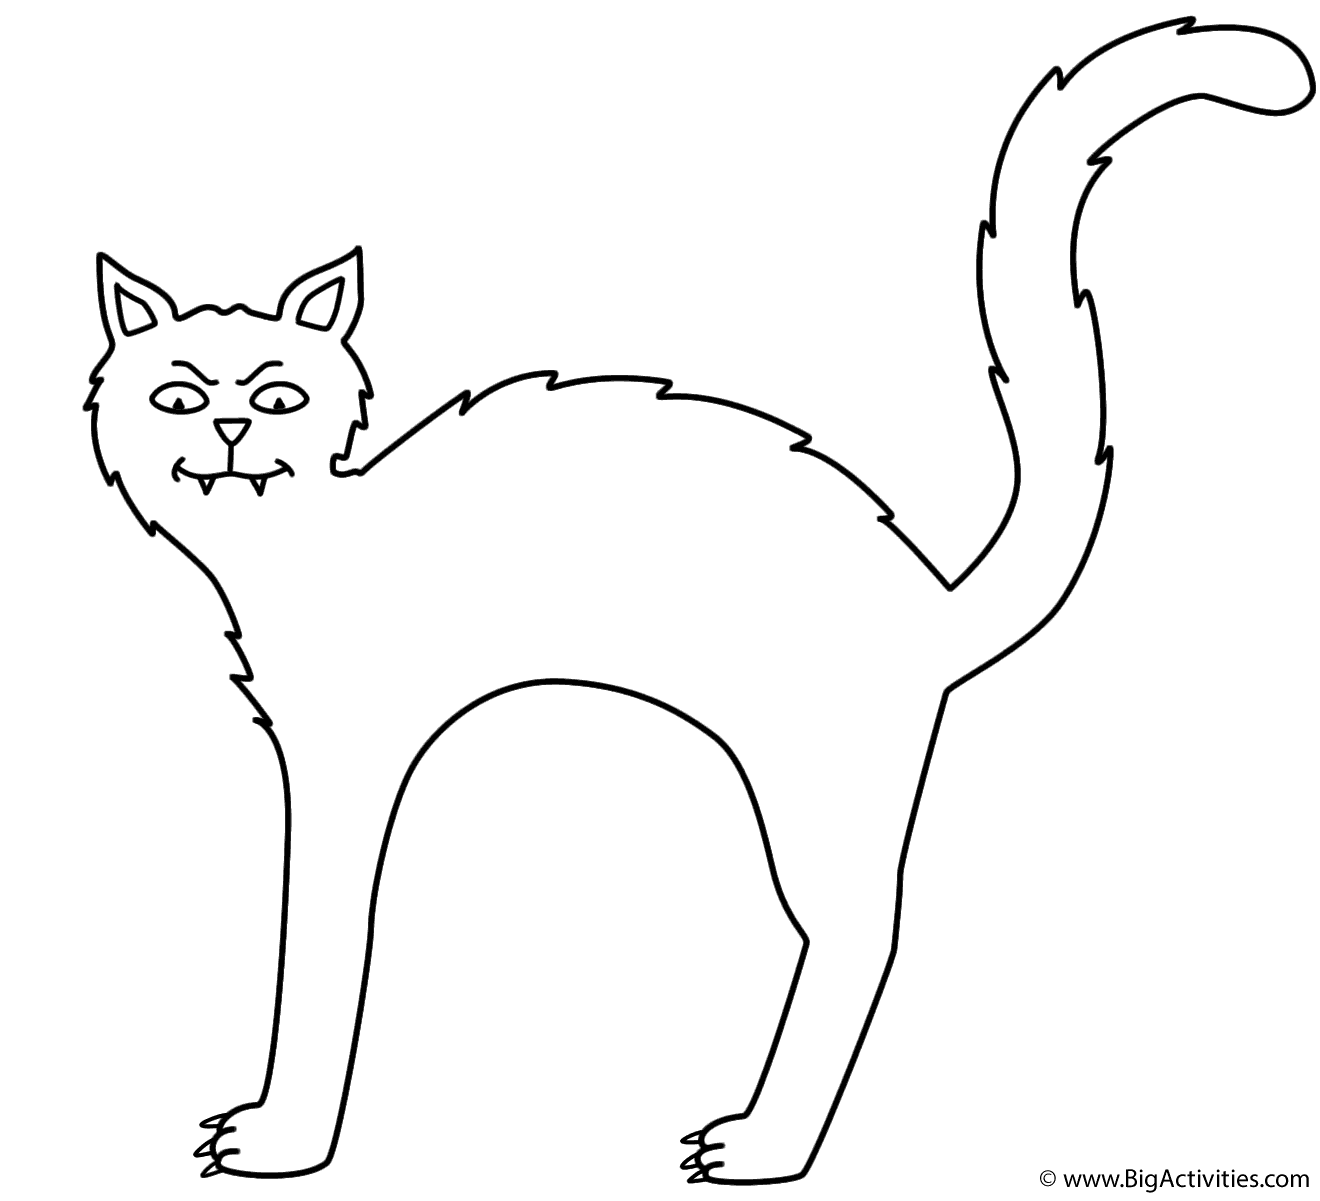 black cat coloring pages Black cat   Coloring Page (Halloween) black cat coloring pages